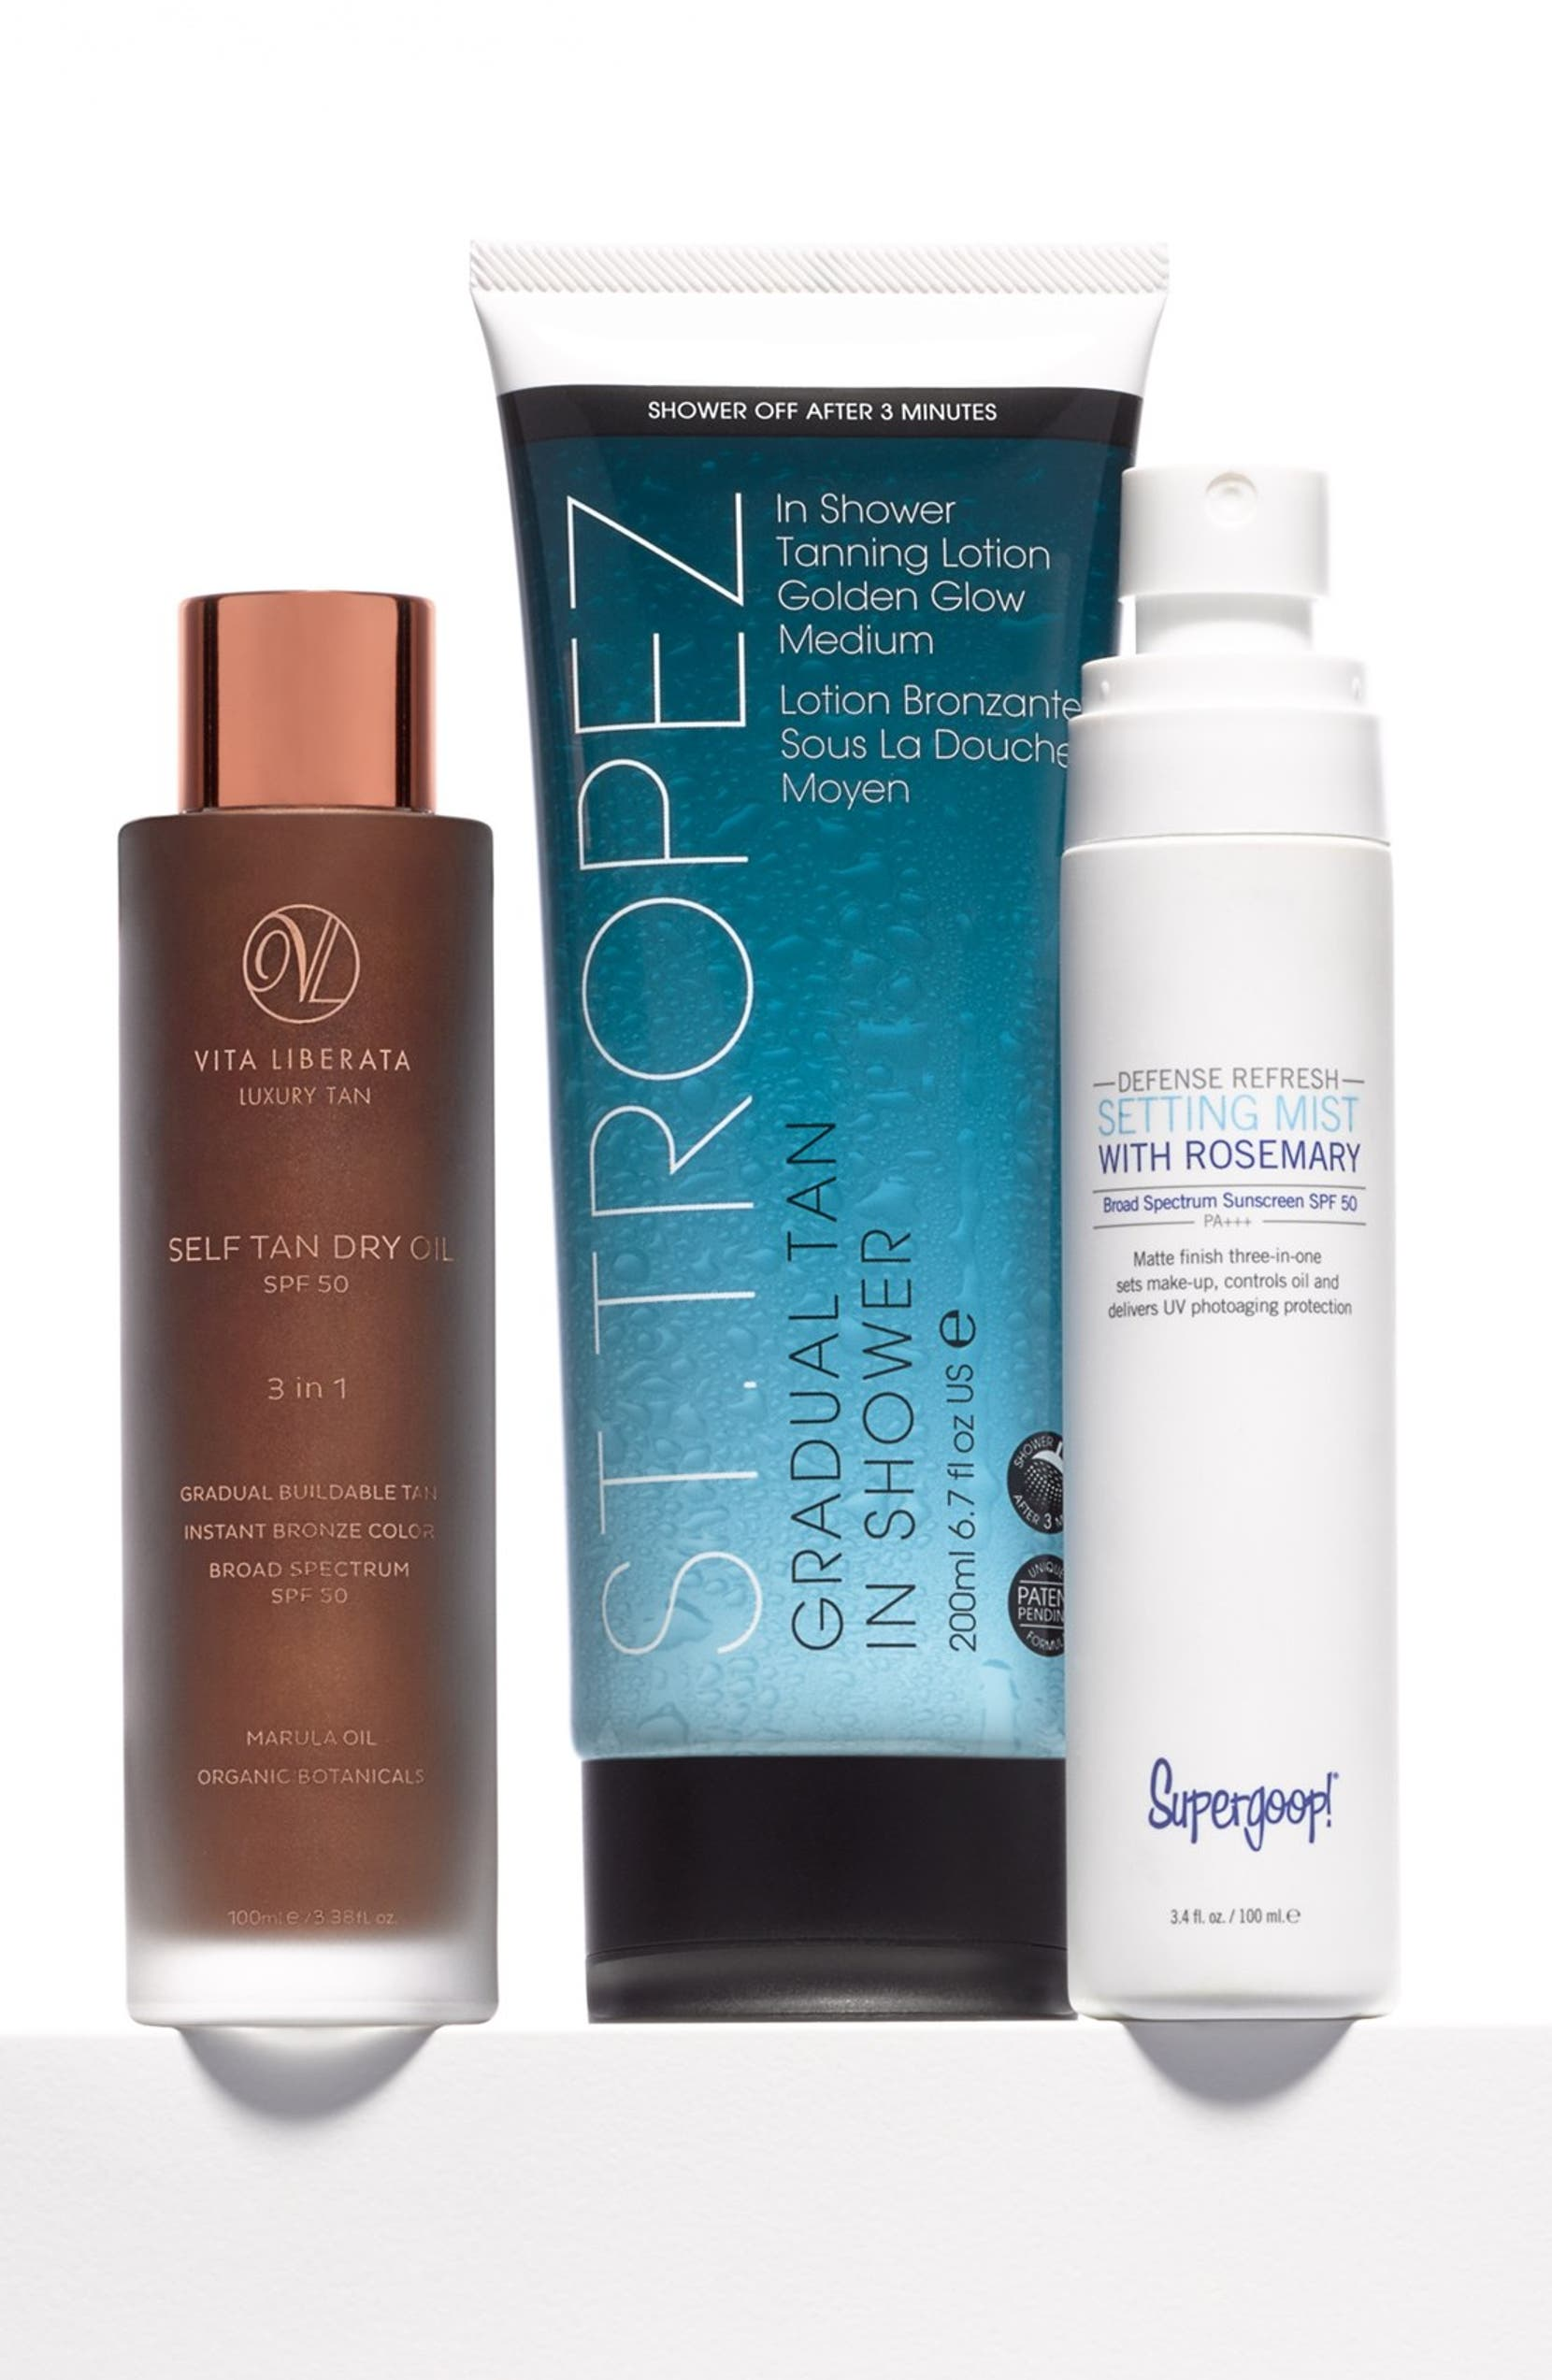 St. Tropez \'In Shower - Golden Glow\' Gradual Tan | Nordstrom